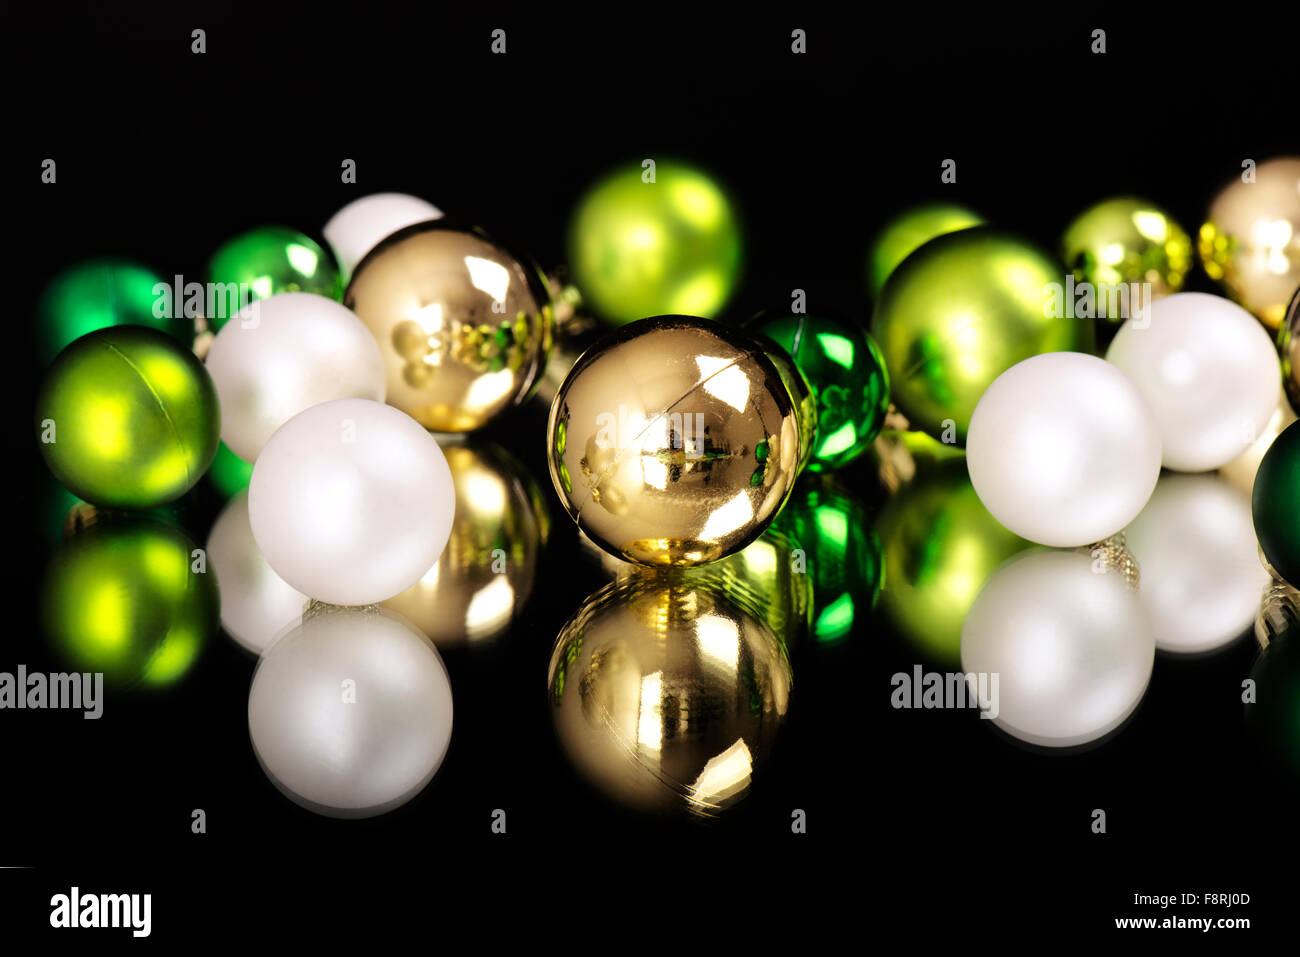 New Years And Christmas Ornaments Balls Of White Gold Green On A Mirror In Front Black Background